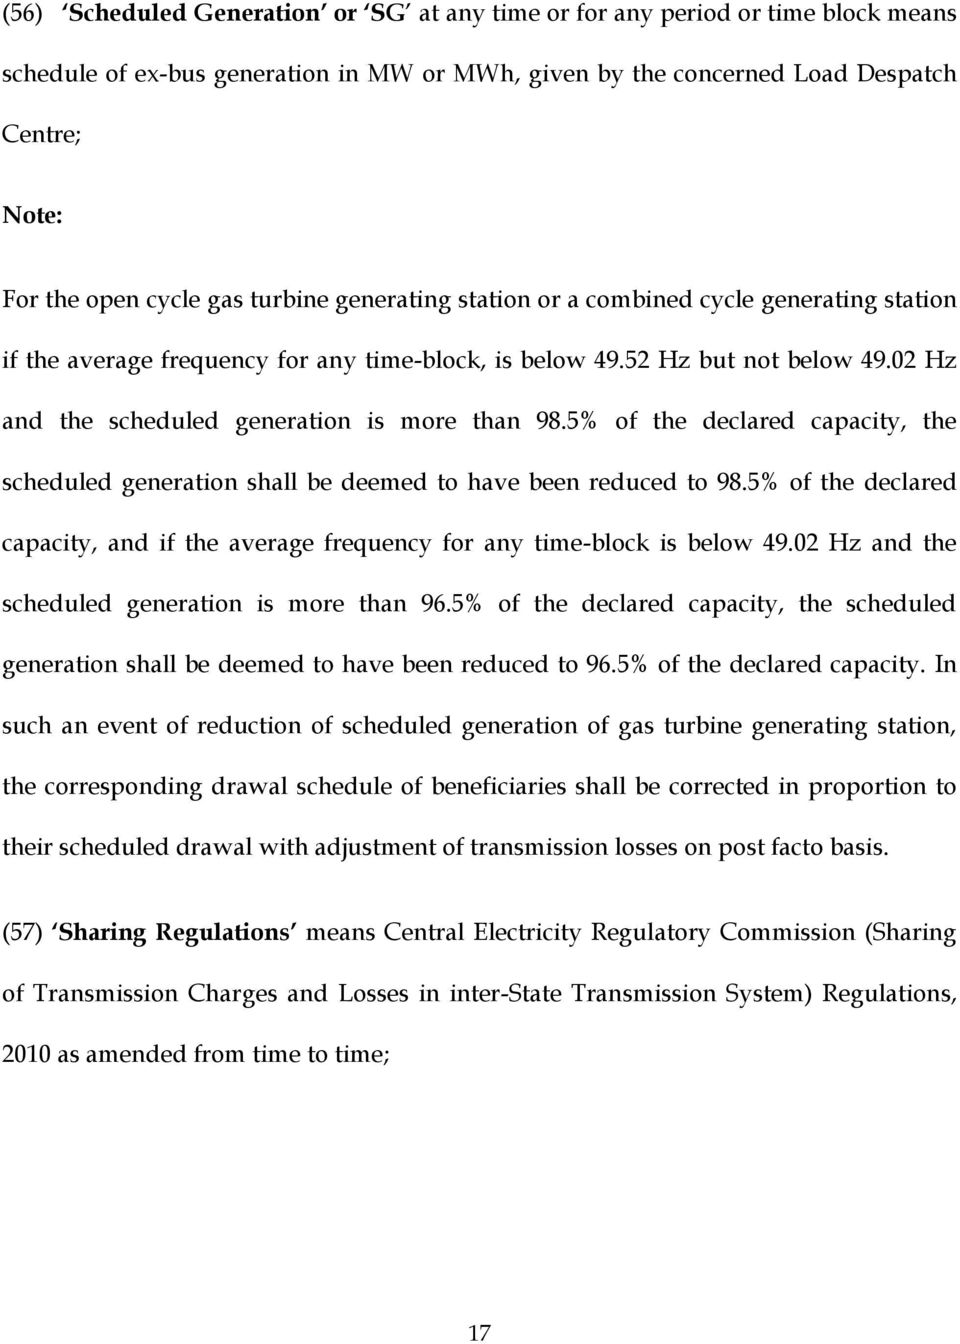 5% of the declared capacity, the scheduled generation shall be deemed to have been reduced to 98.5% of the declared capacity, and if the average frequency for any time-block is below 49.